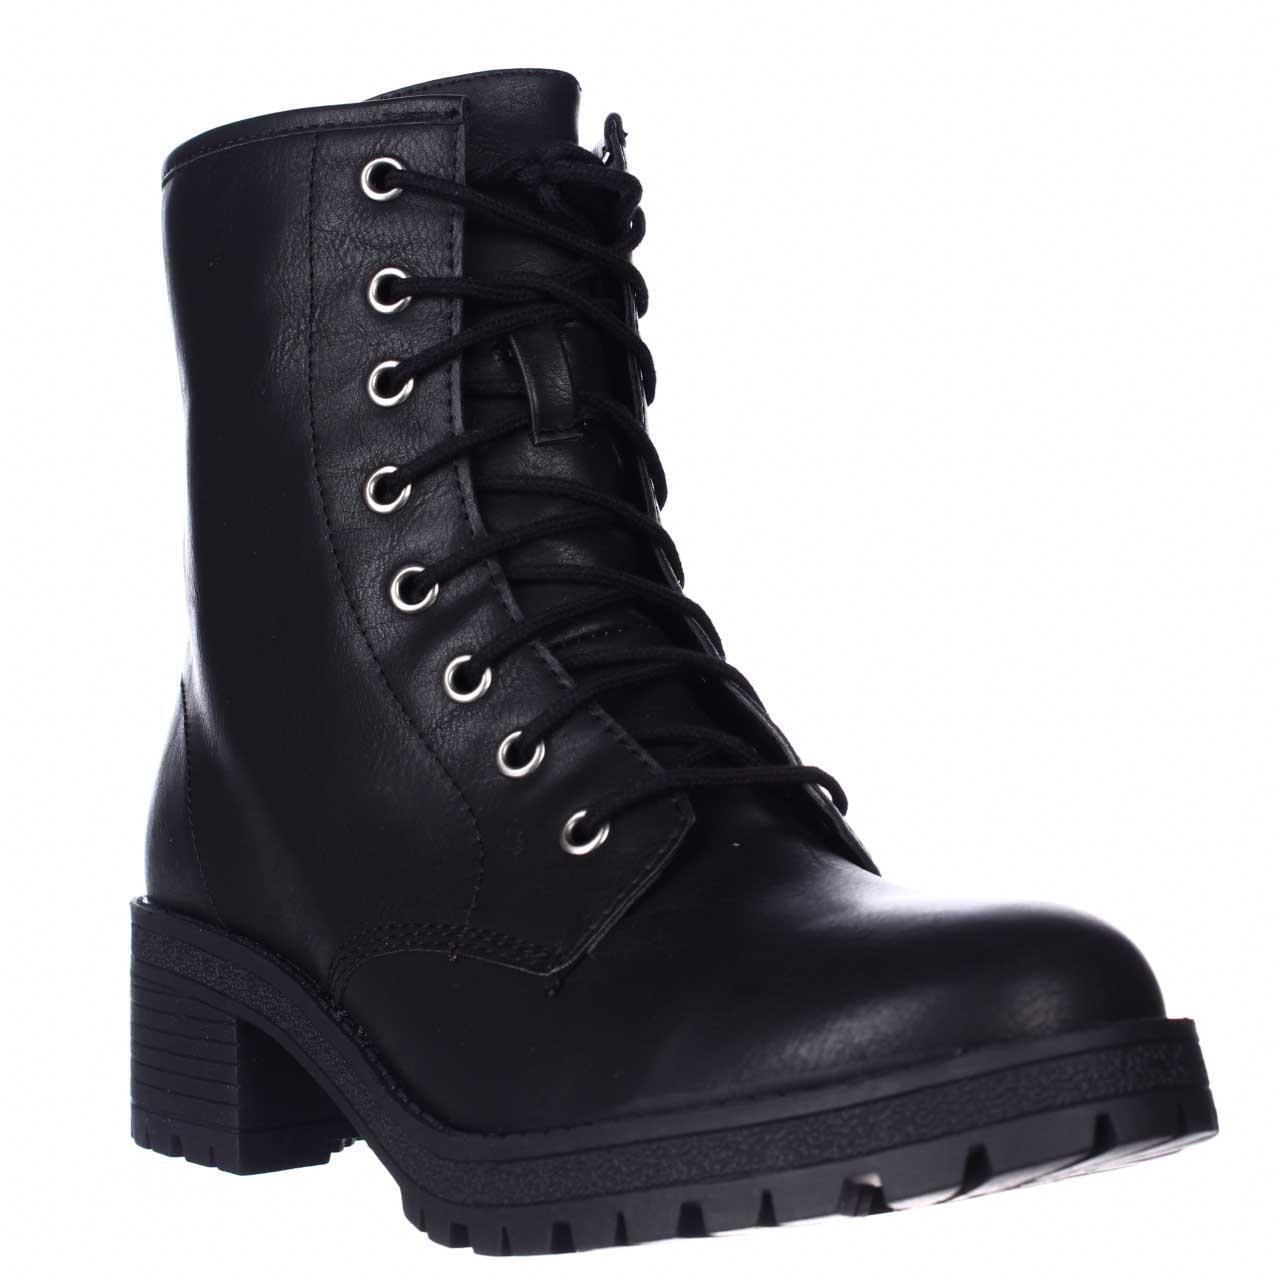 Madden Girl Eloisee Lace Up Combat Boots In Black Lyst